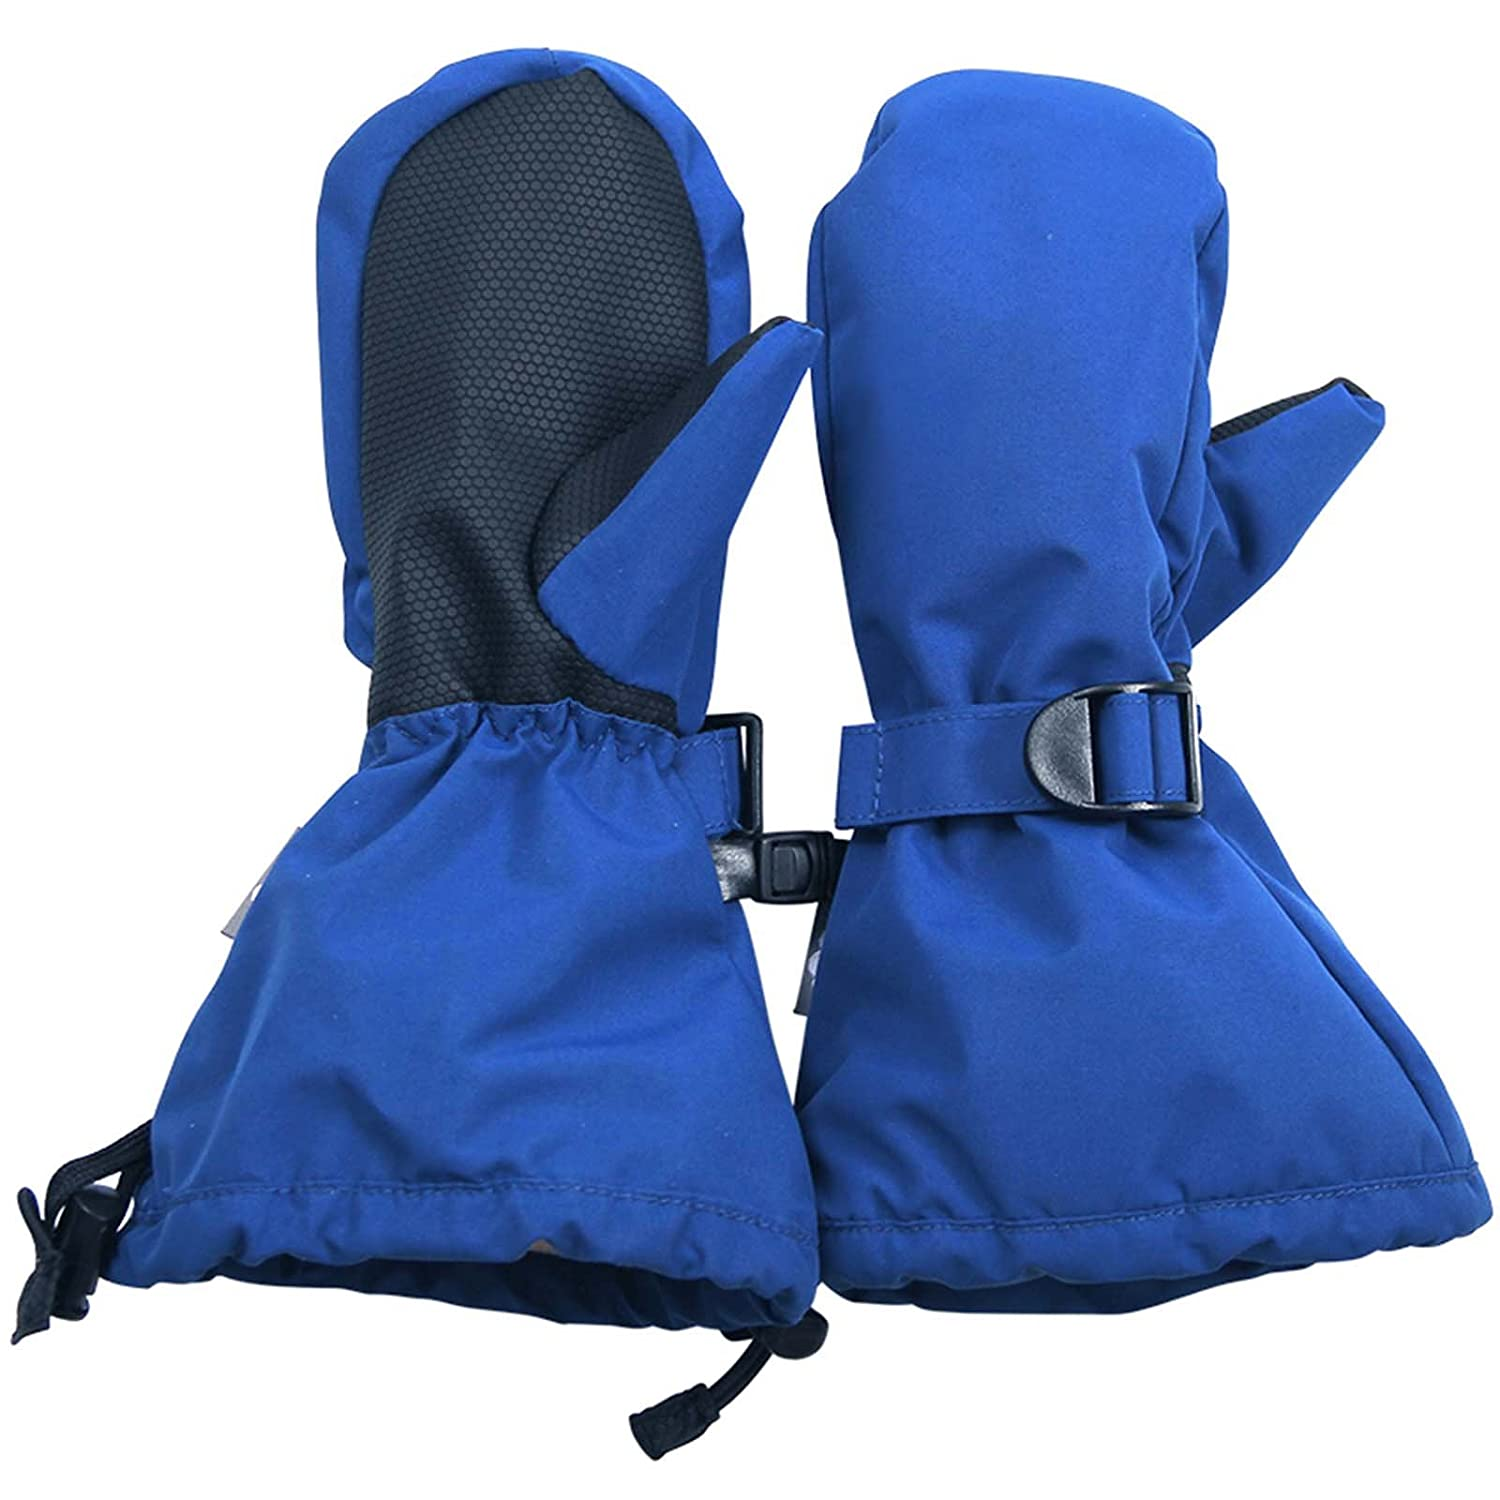 Waterproof Stay-on Snow Mittens for Baby Toddler Kids (L: 6-8Y, Blue) Twinklebelle Design Inc. 24-14L